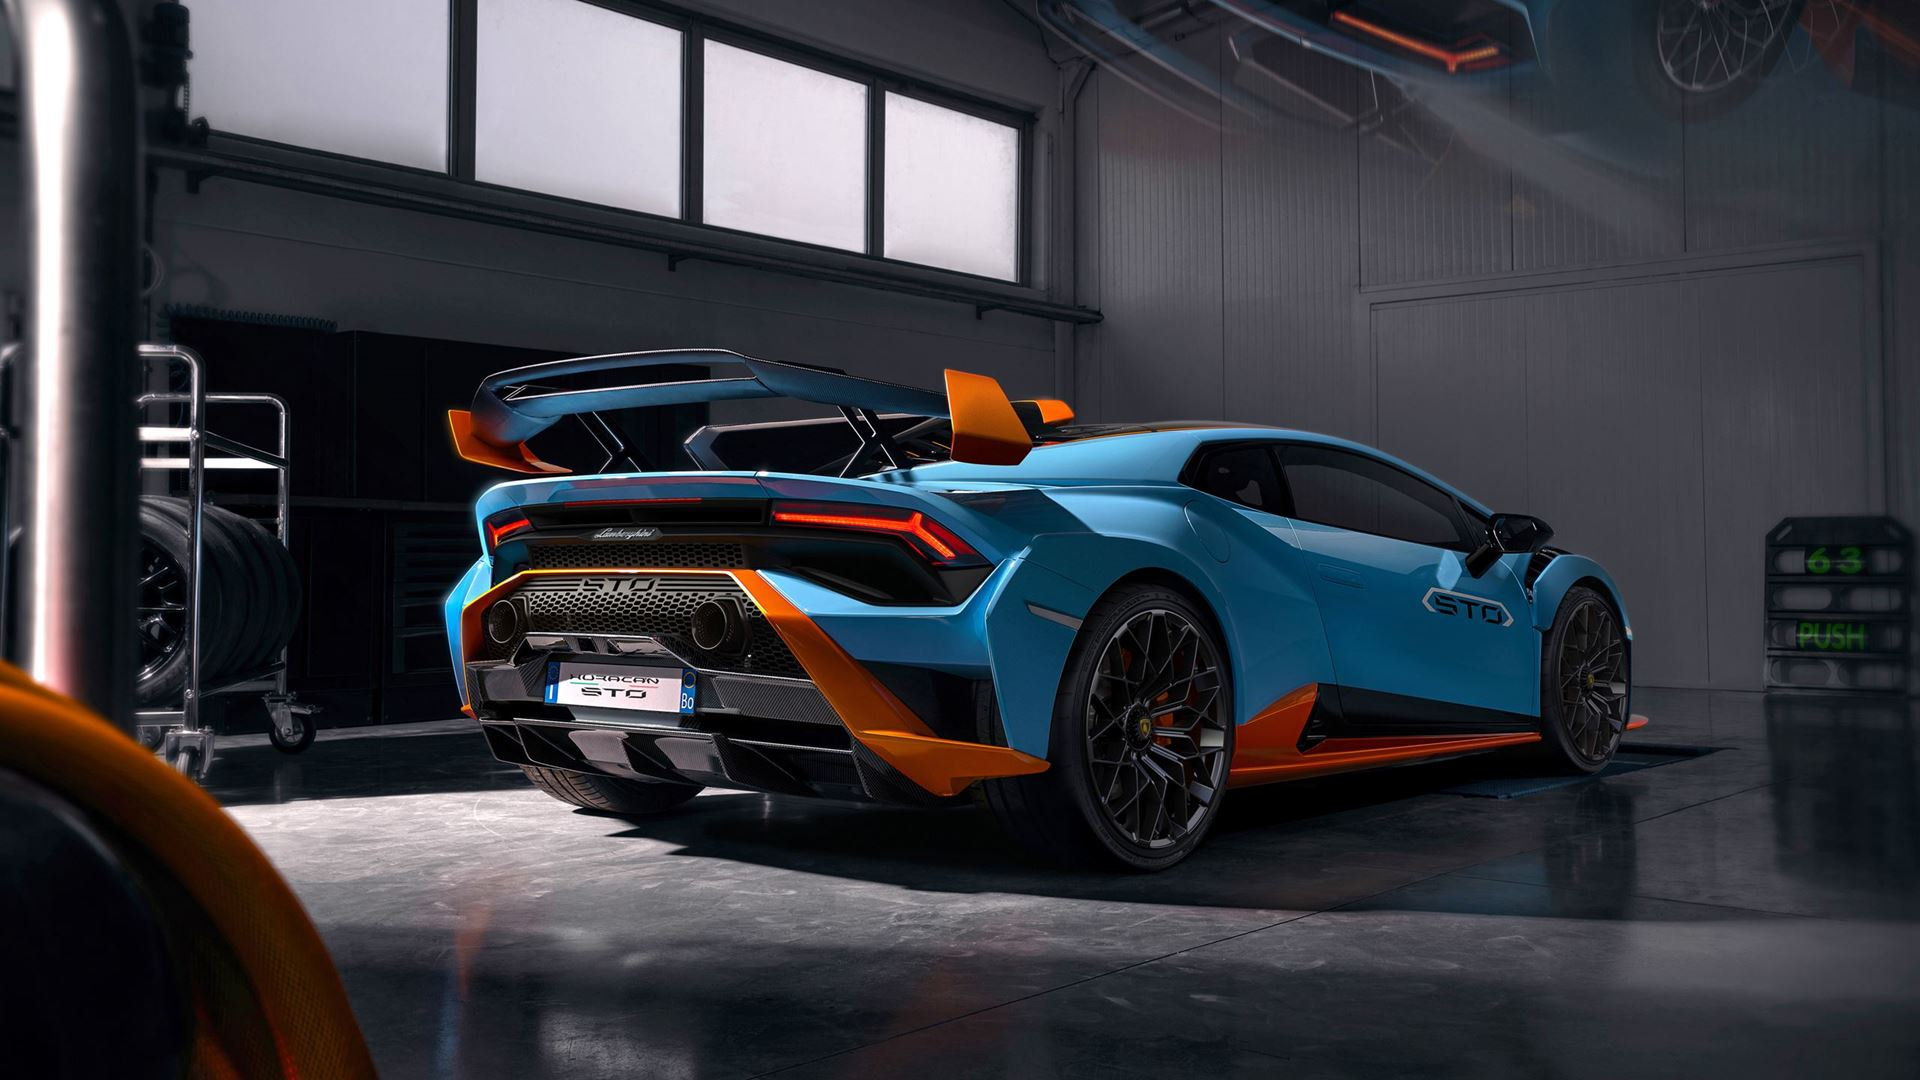 Racetrack to road: the new Lamborghini Huracán STO - Image 5